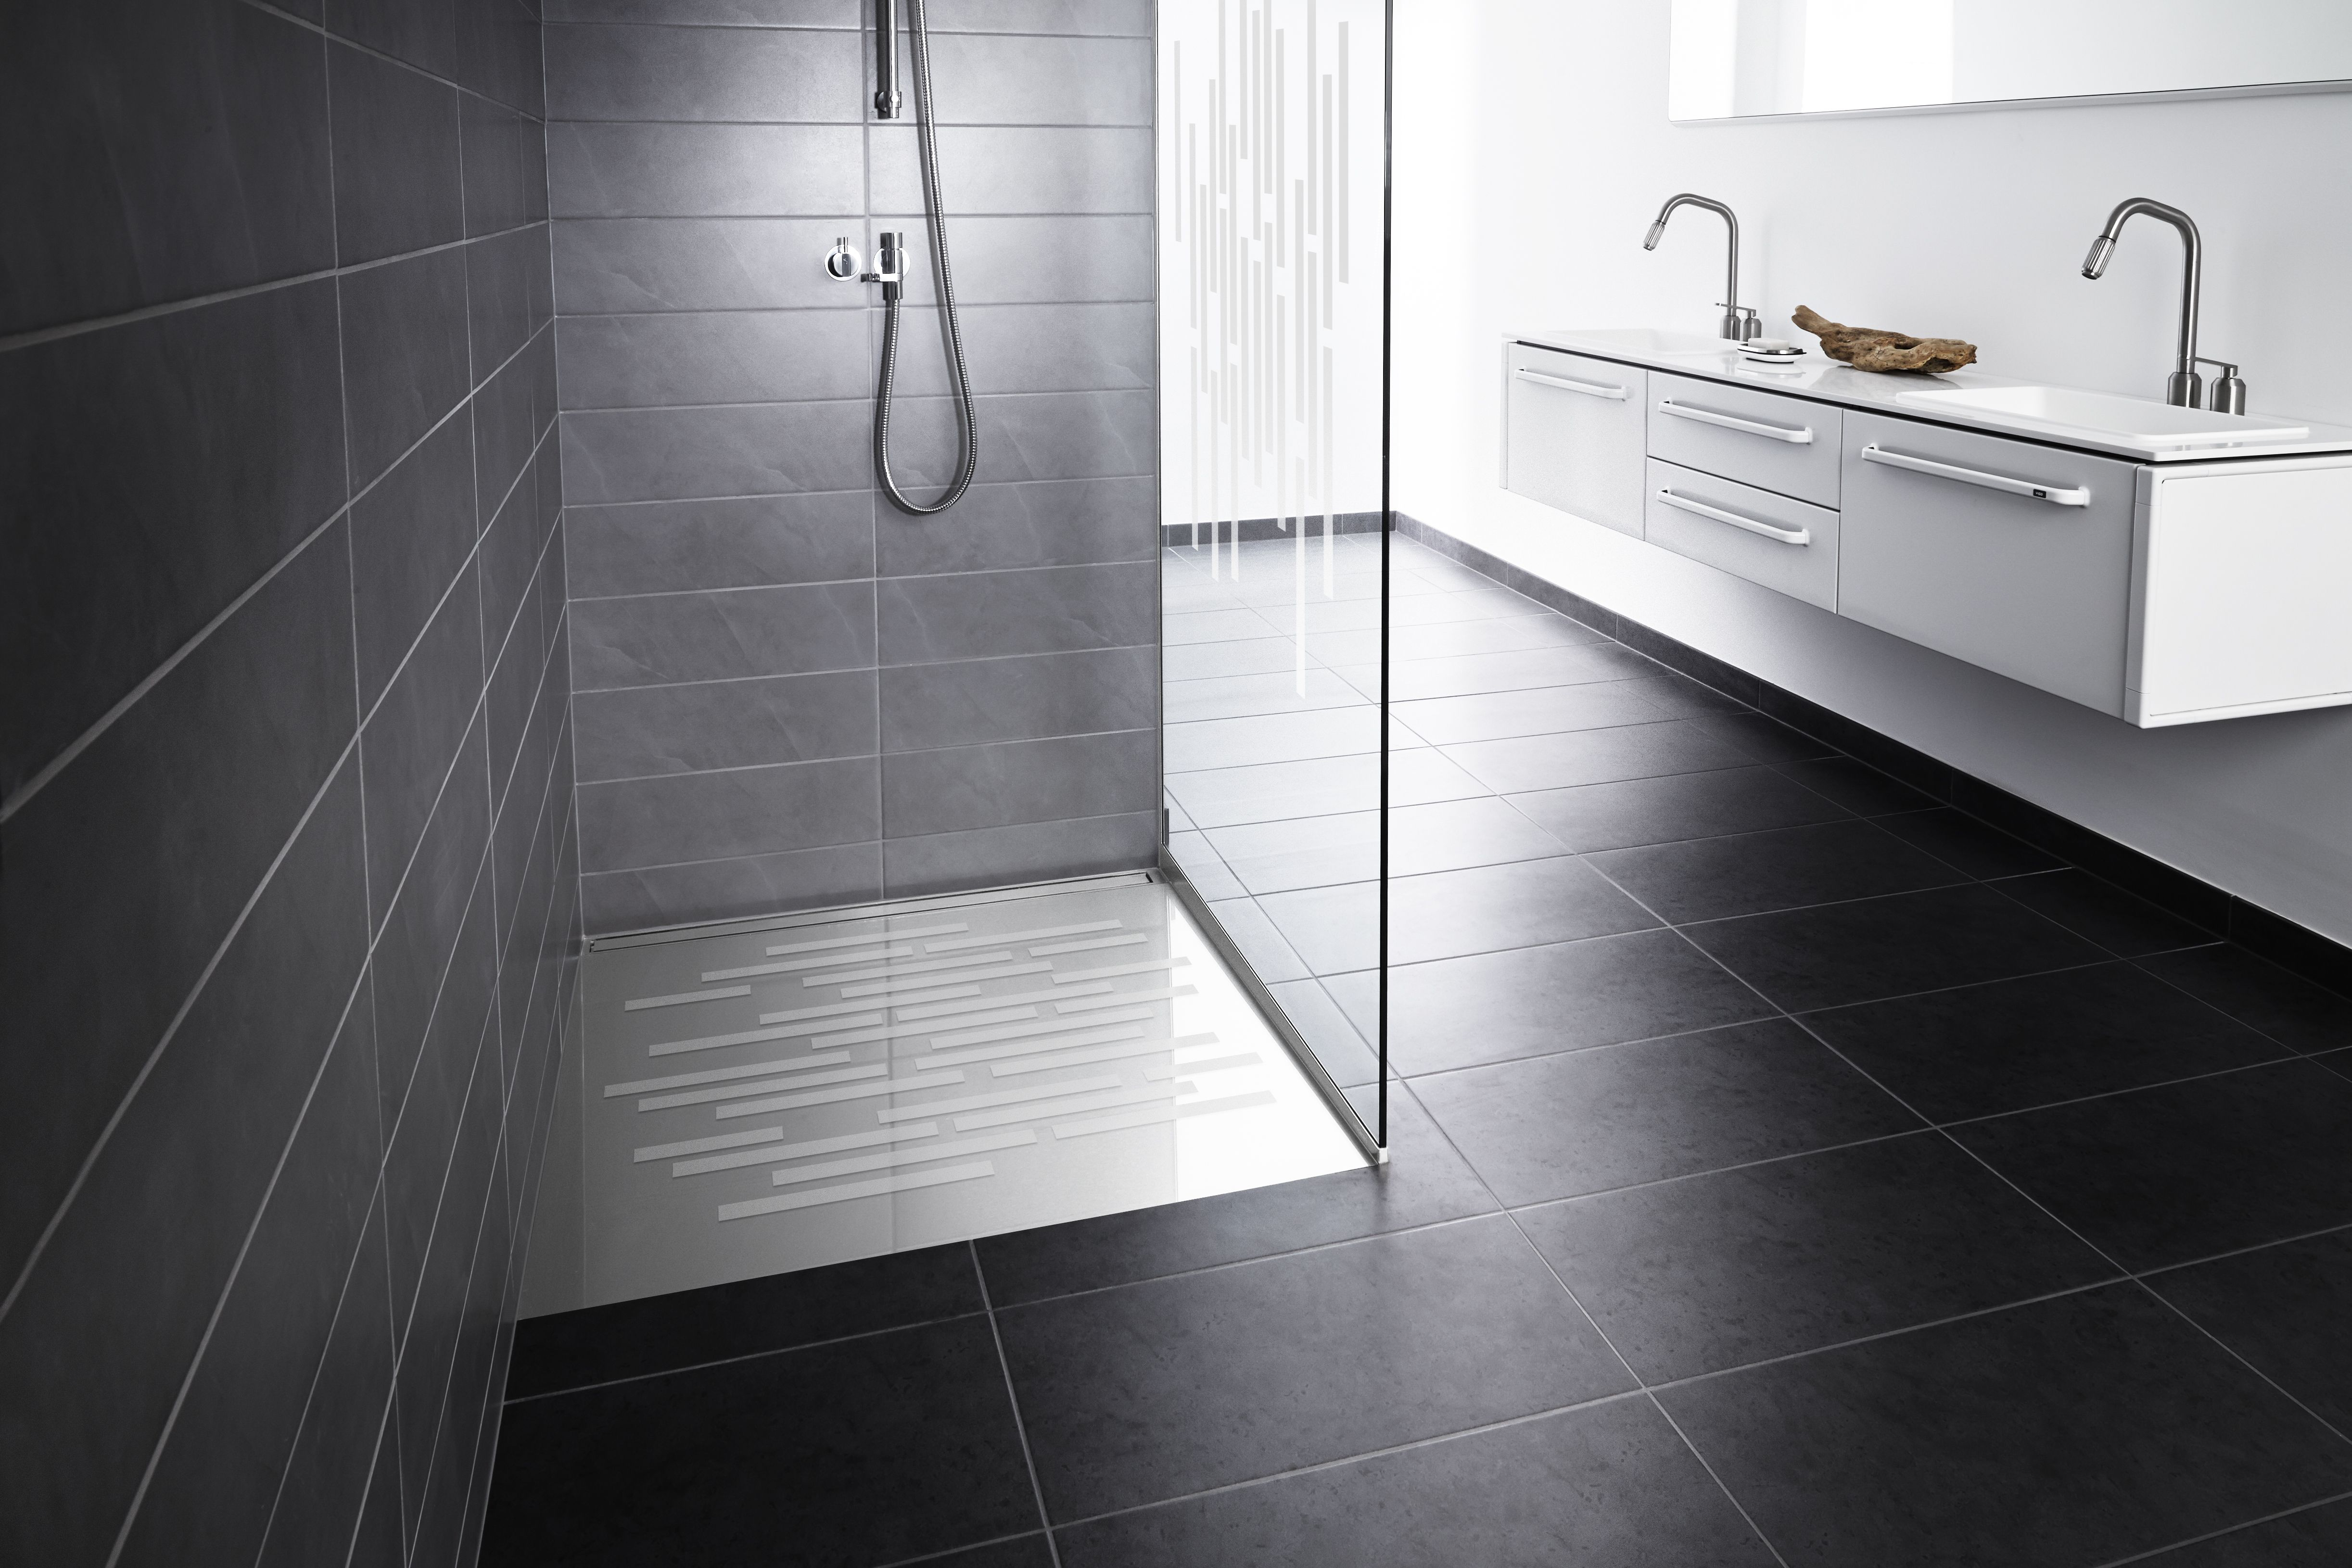 A stylish solution. Patented Linear Wall Mounted Drain with a solid stainless steel panel and Glass Shower Base along with an integrated glass shower screen. One slope no grout lines and no need to stand on the drain in the shower.